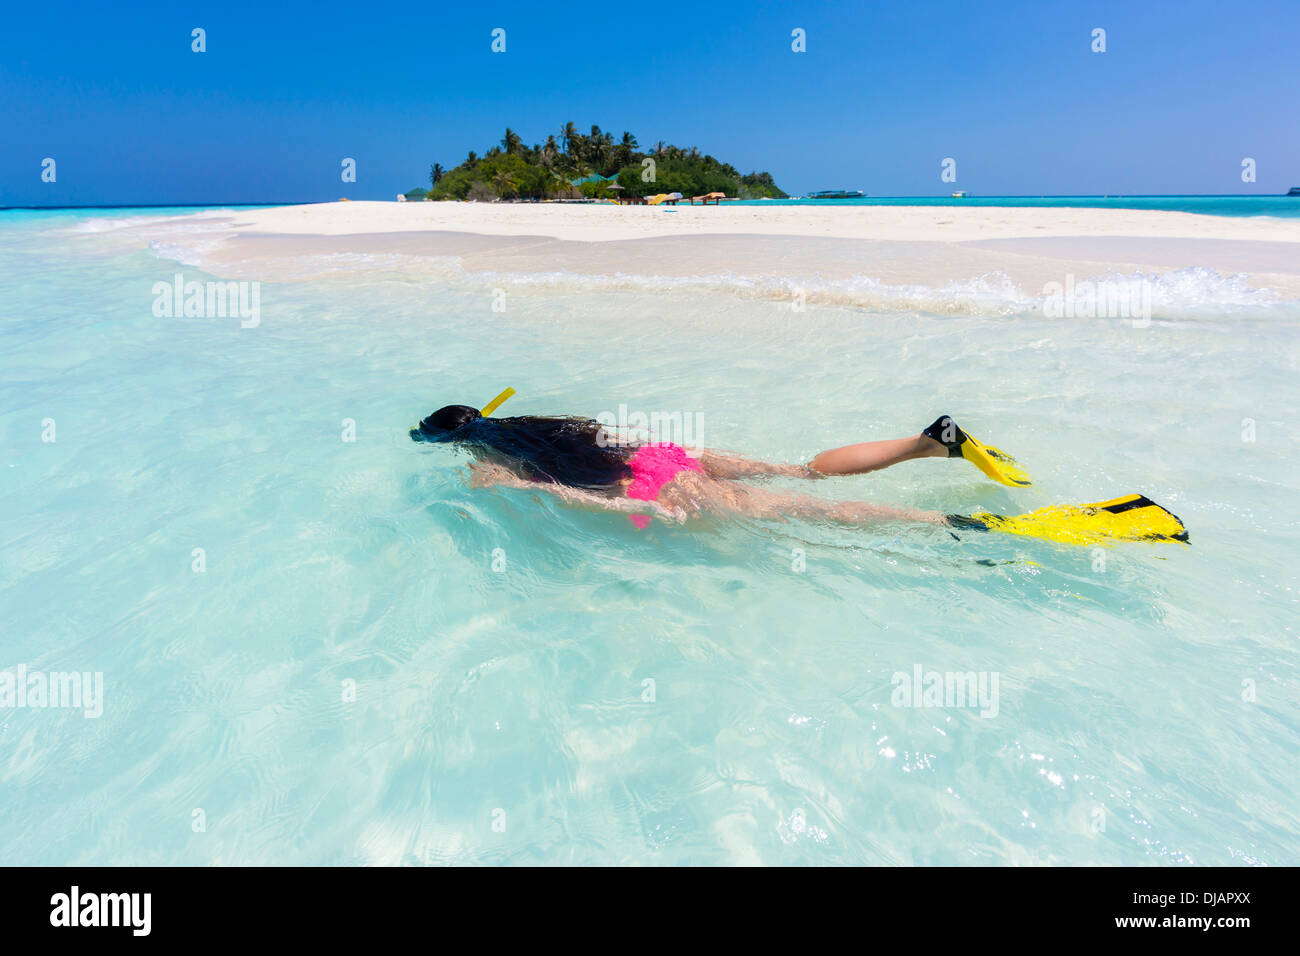 Woman snorkelling in a lagoon, Indian Ocean, Maldives - Stock Image